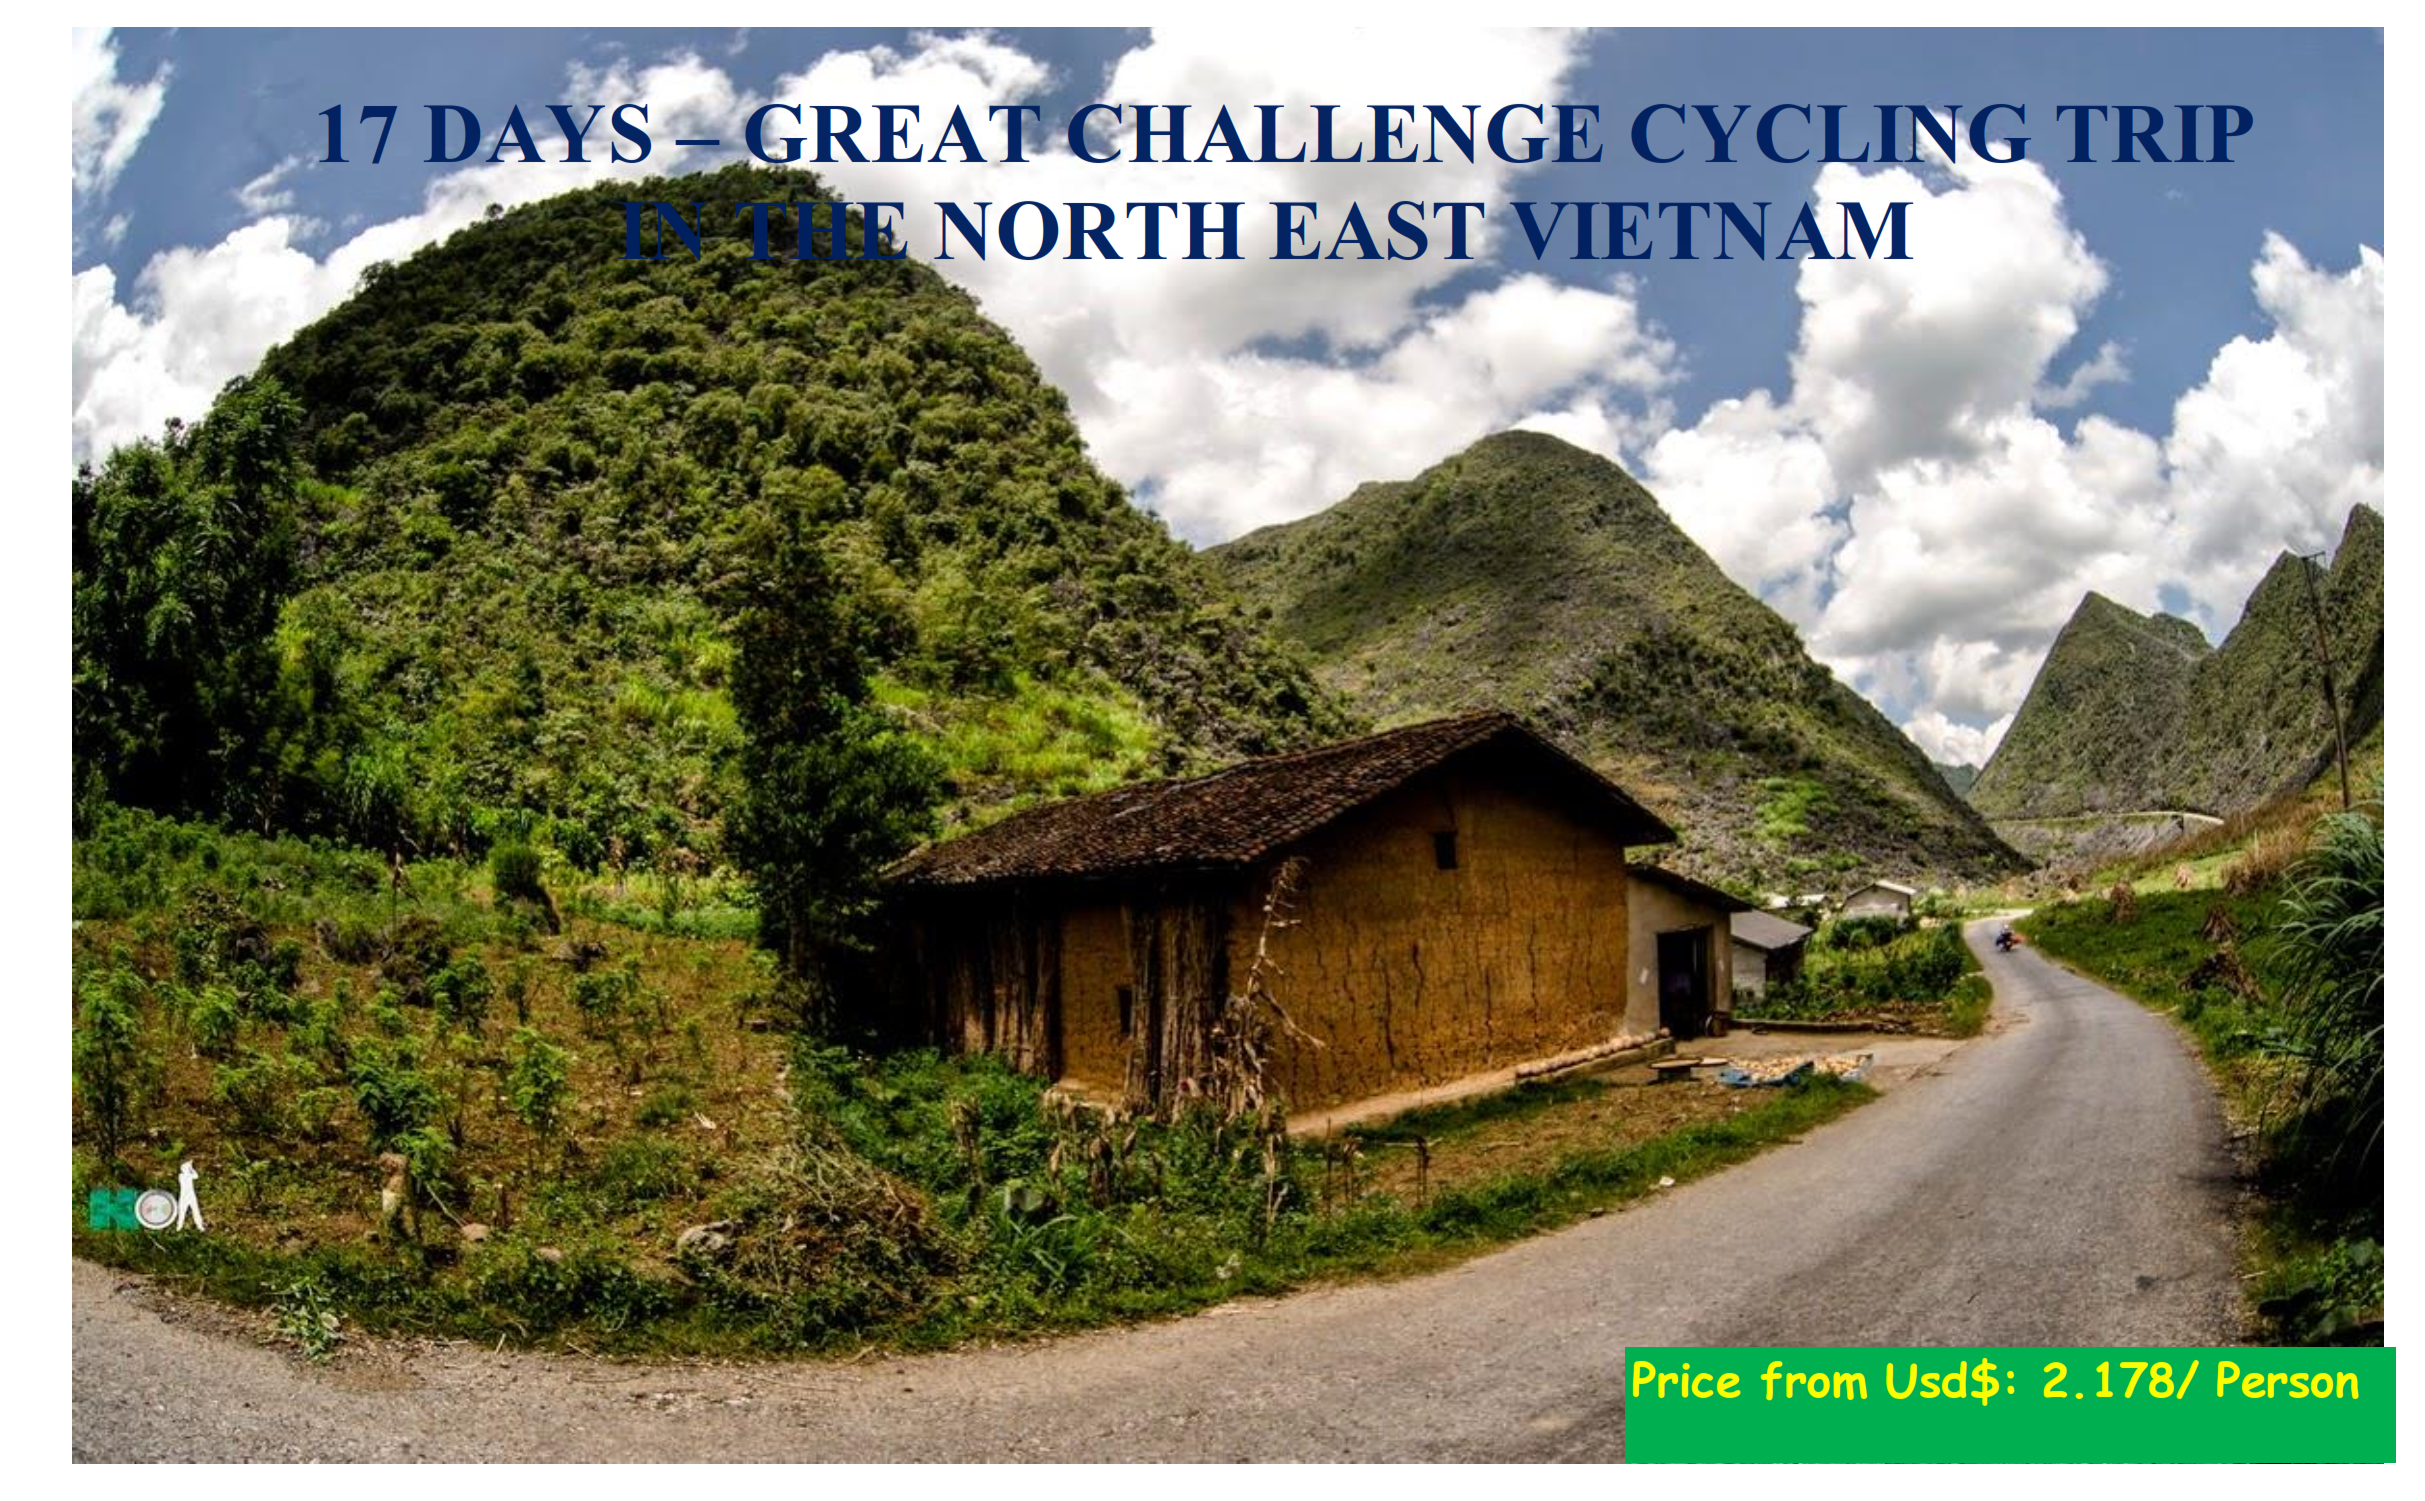 17 DAYS – GREAT CHALLENGE CYCLING TRIP  IN THE NORTH EAST VIETNAM